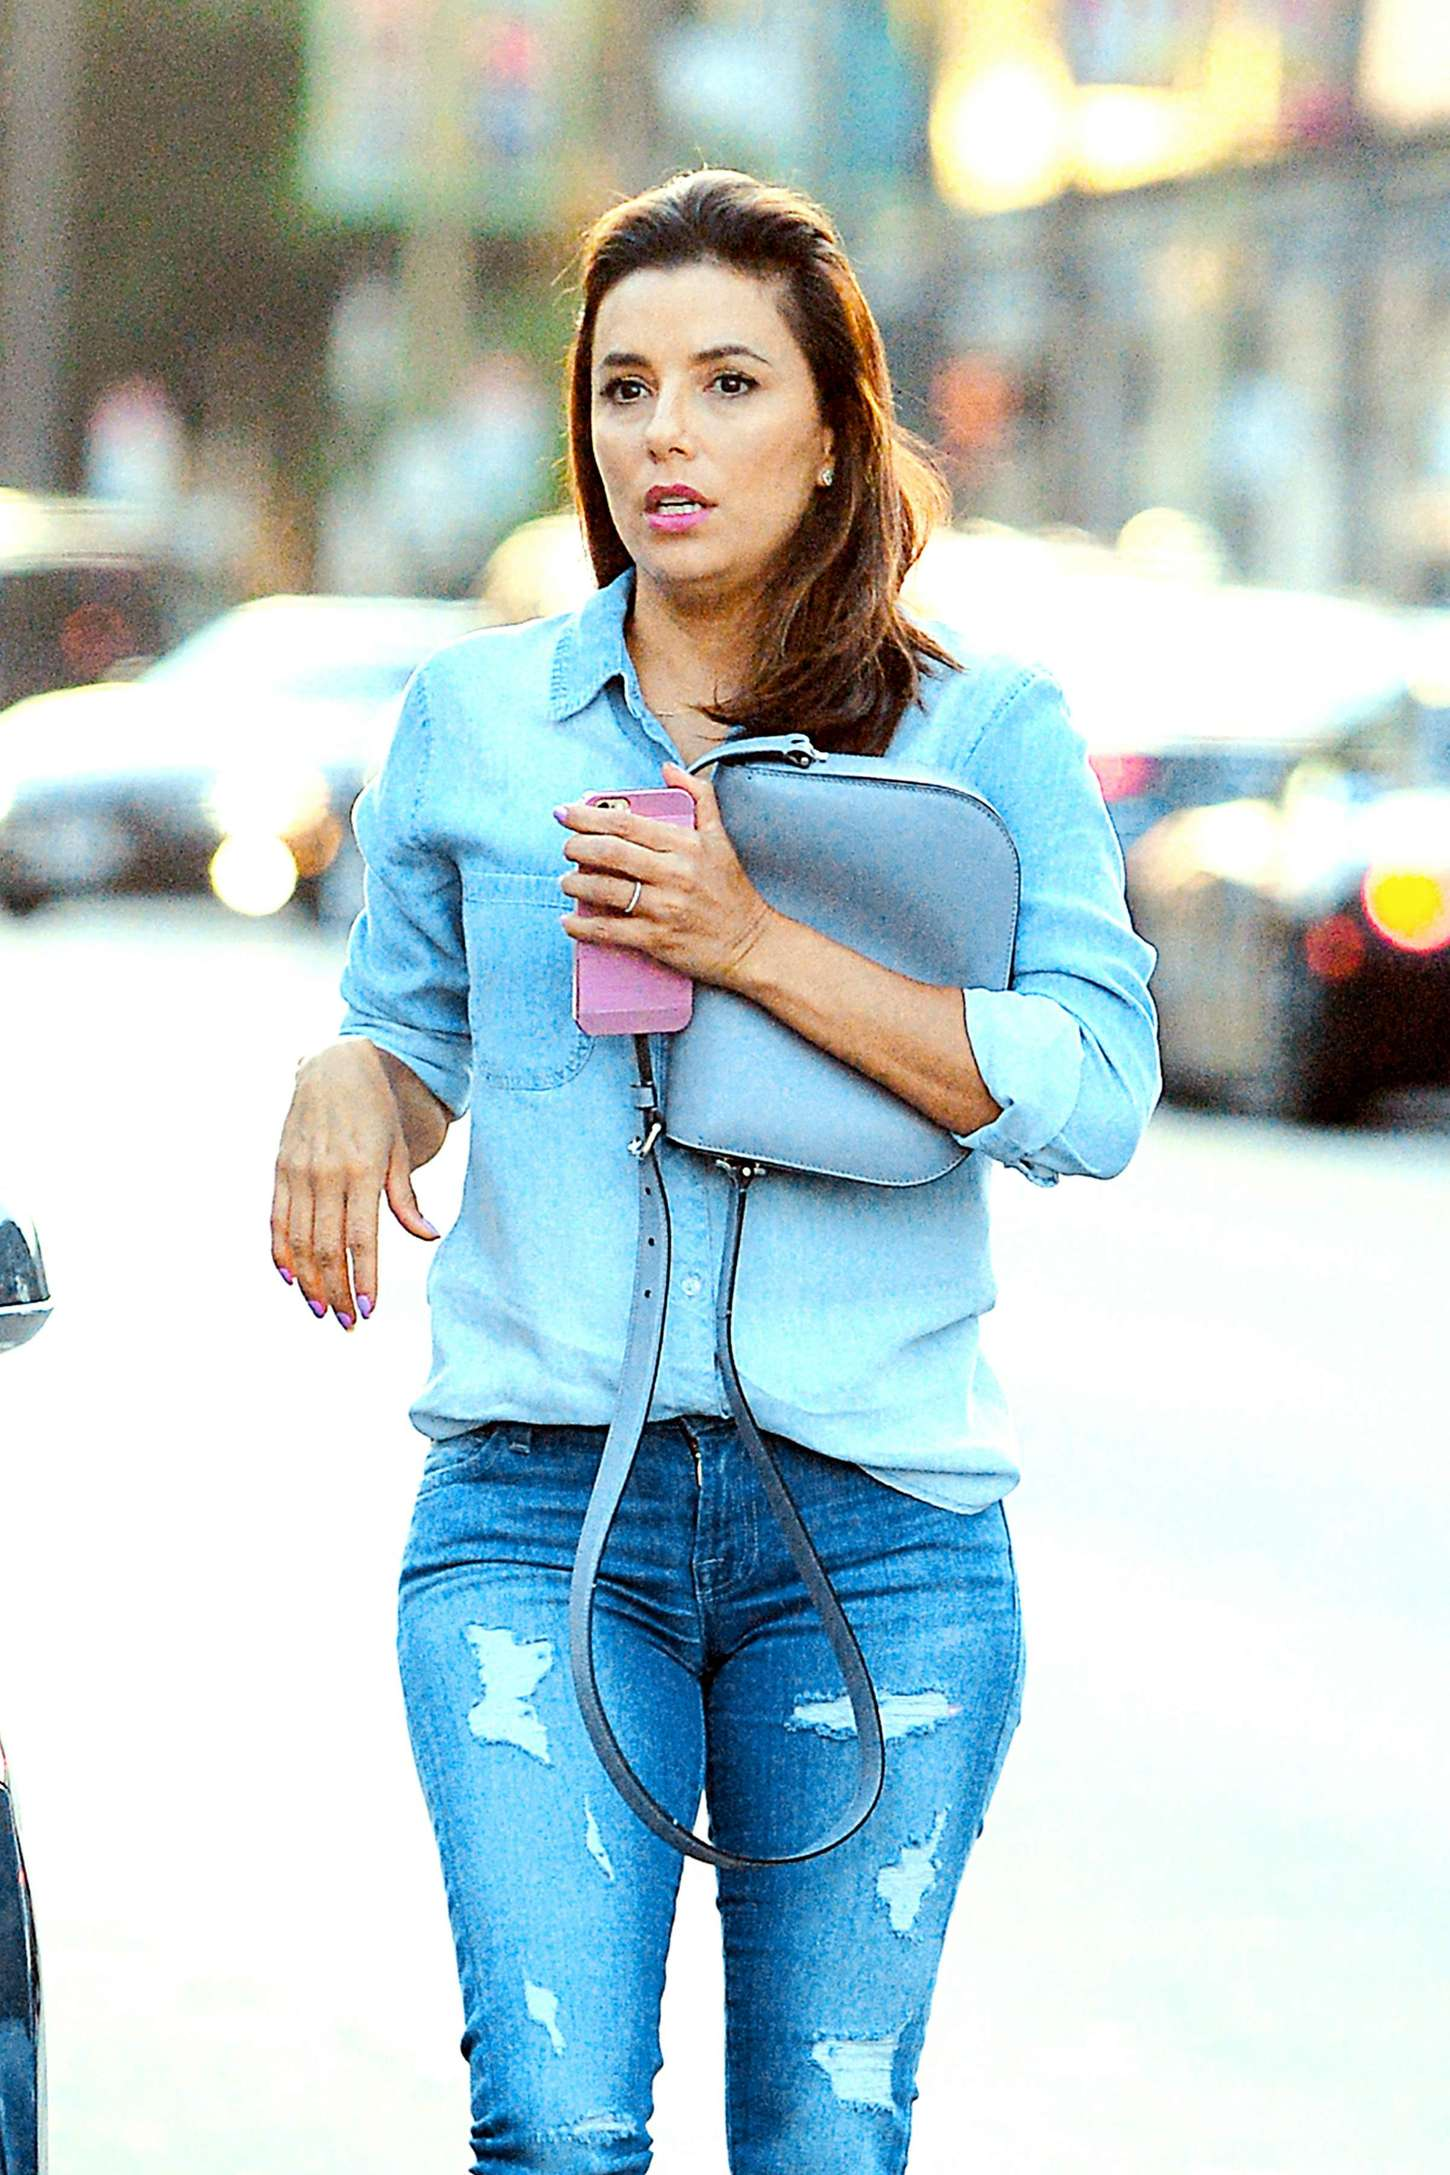 Eva Longoria in Ripped Jeans at Magnolia Restaurant in LA